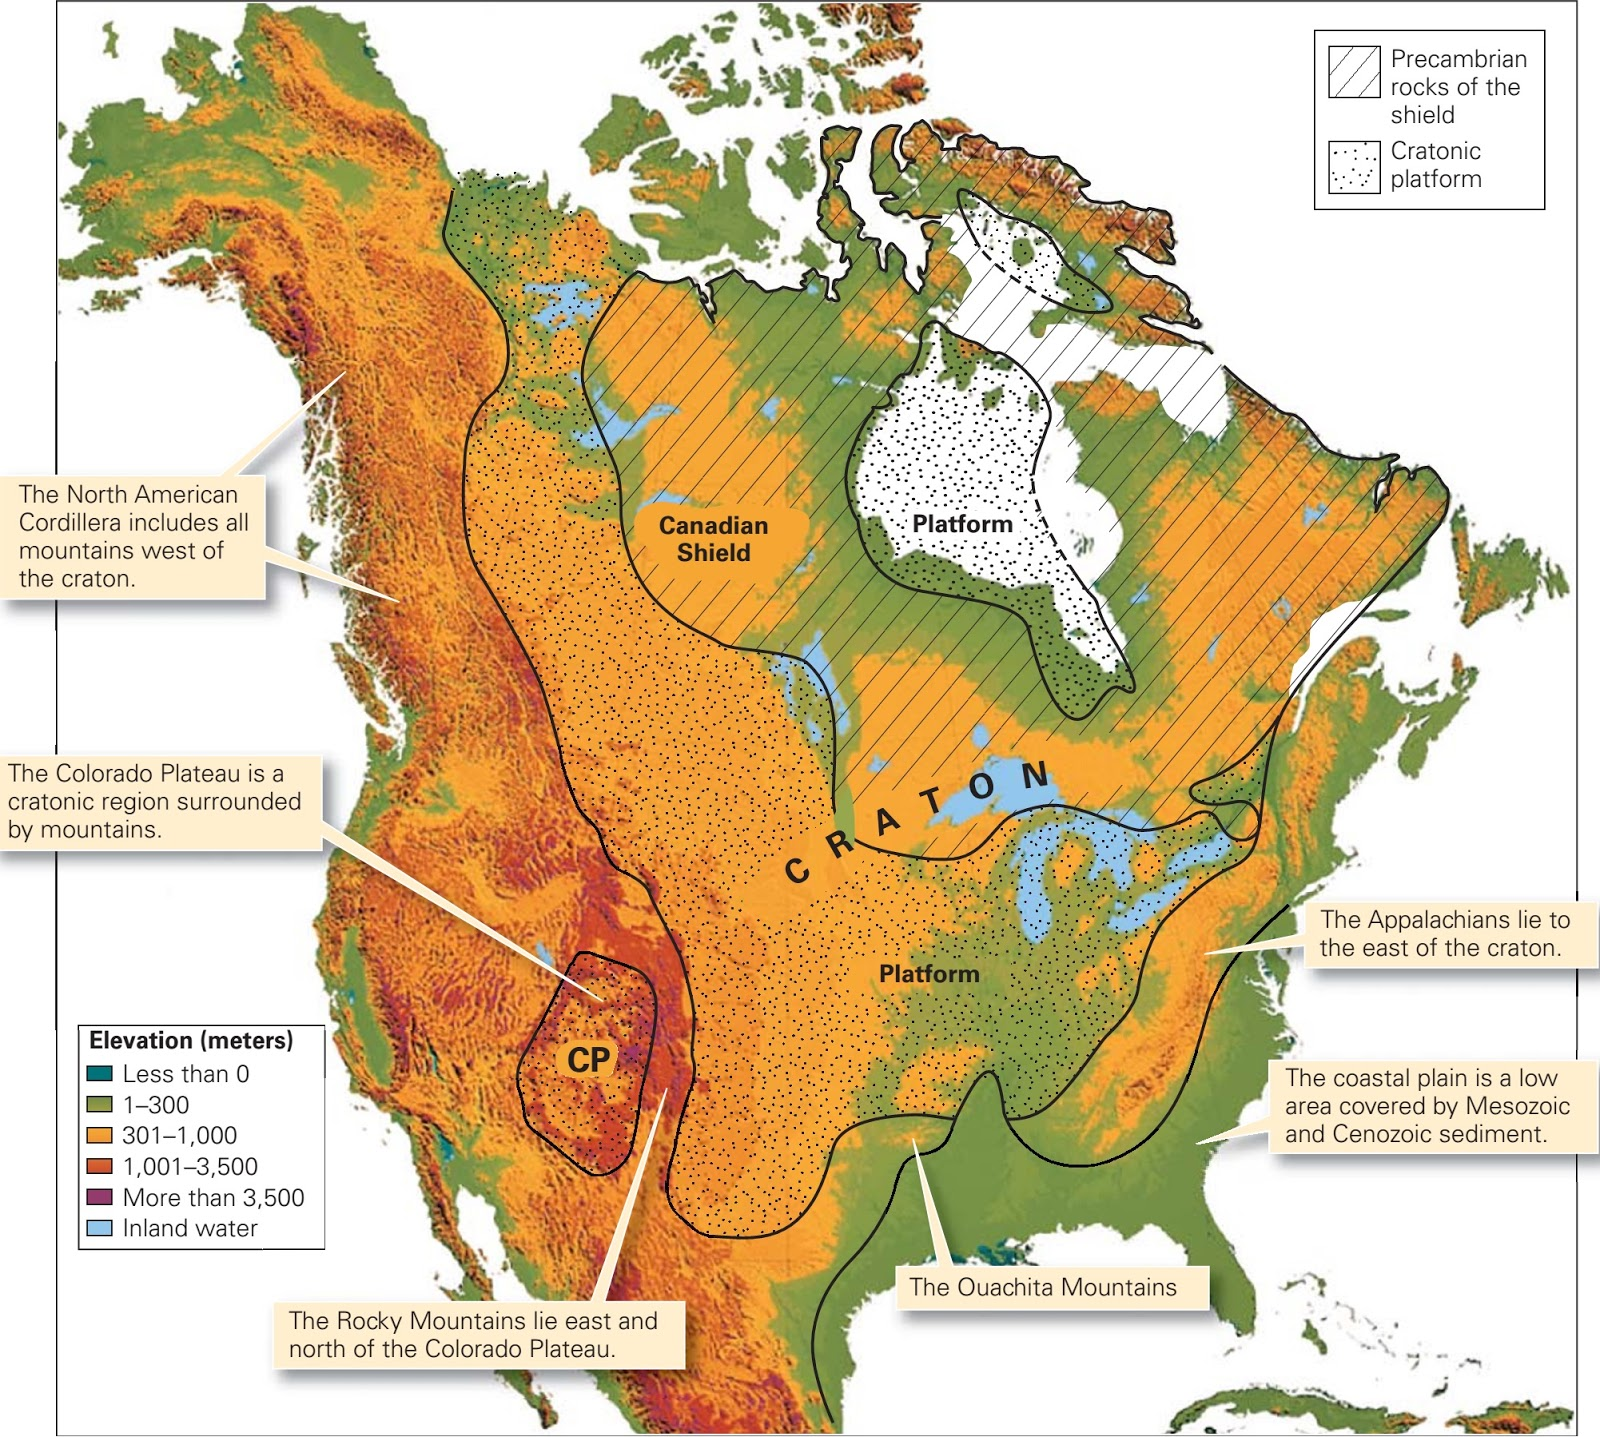 north americas craton consists of a shield where precambrian rock is exposed and a platform where paleozoic sedimentary rock covers the precambrian